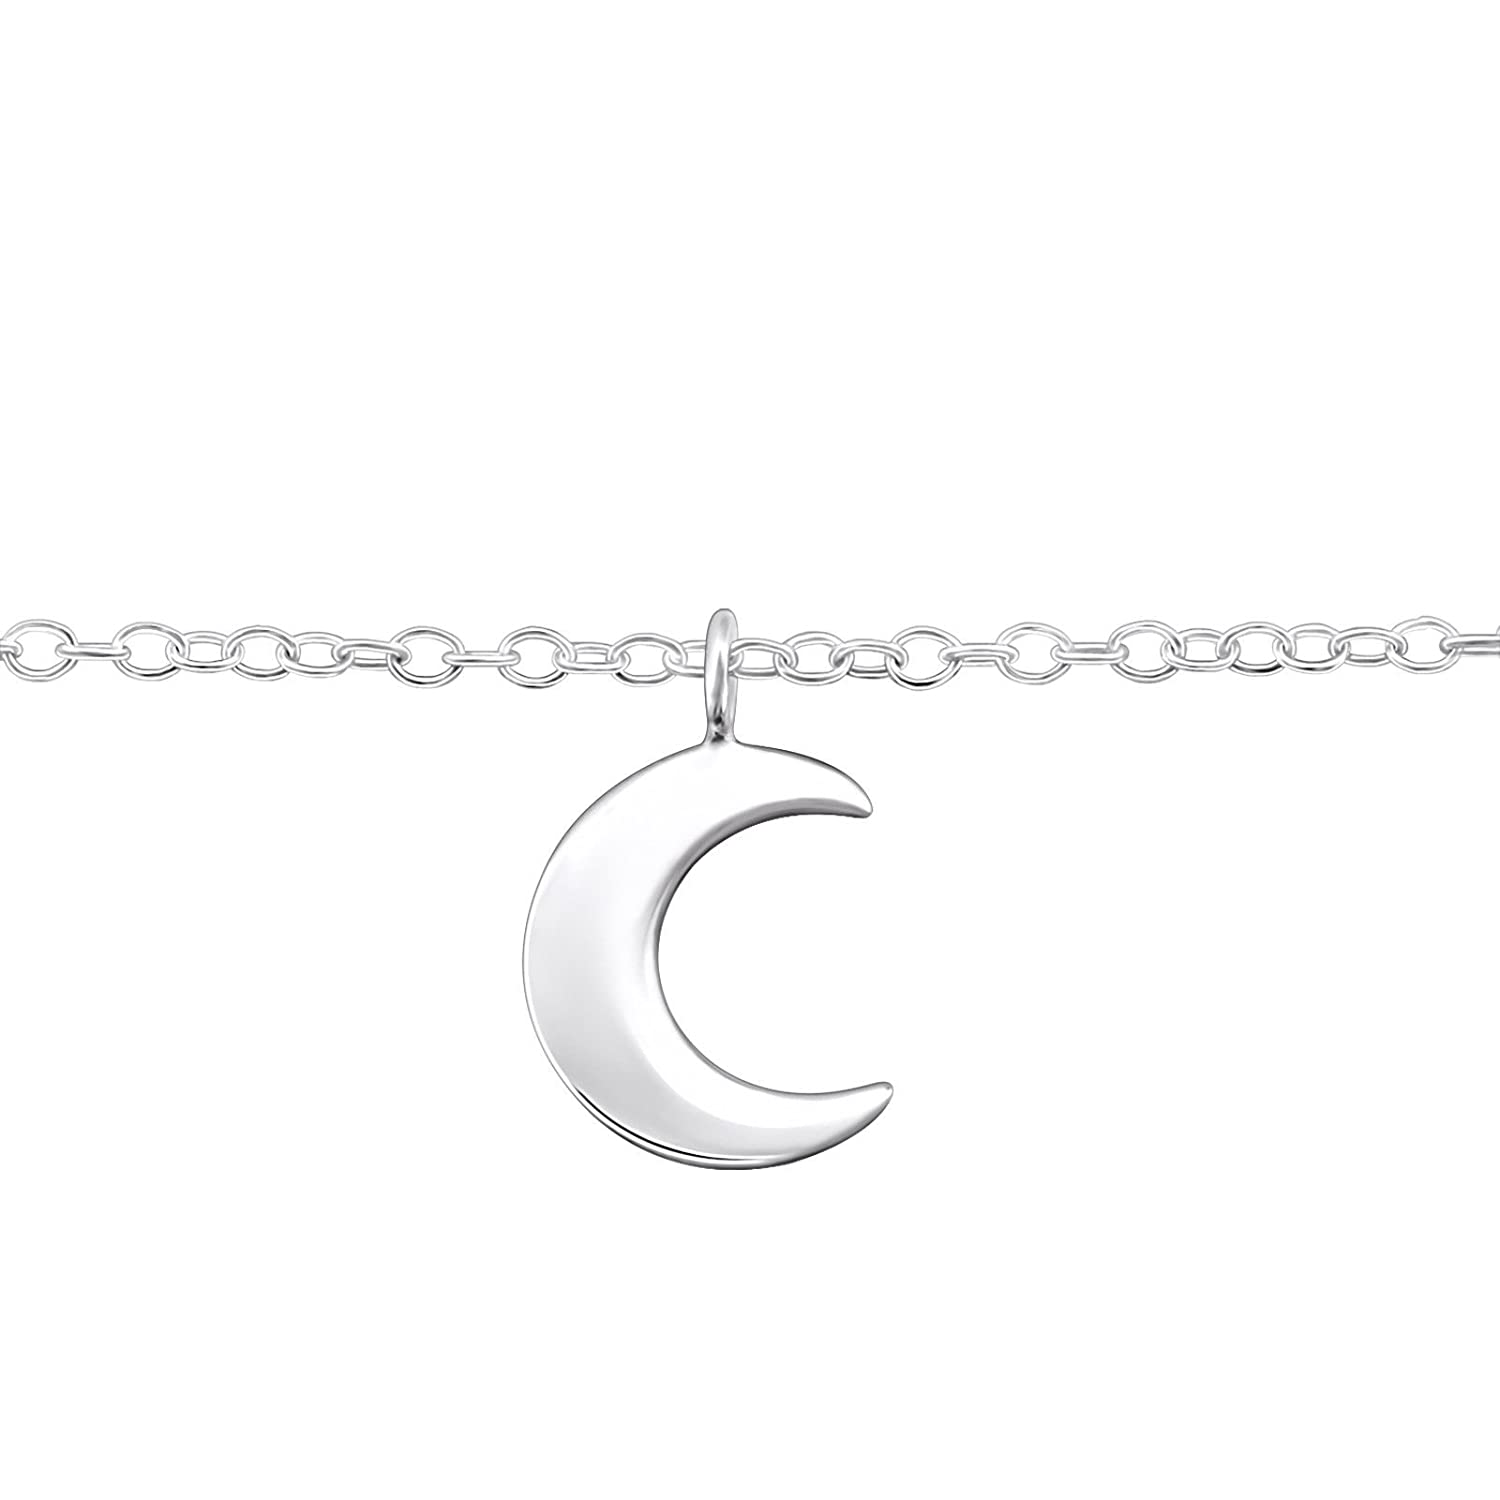 The Rose & Silver Company Women 925 Sterling Silver Moon Anklet 25cm / 9.8 RS0727